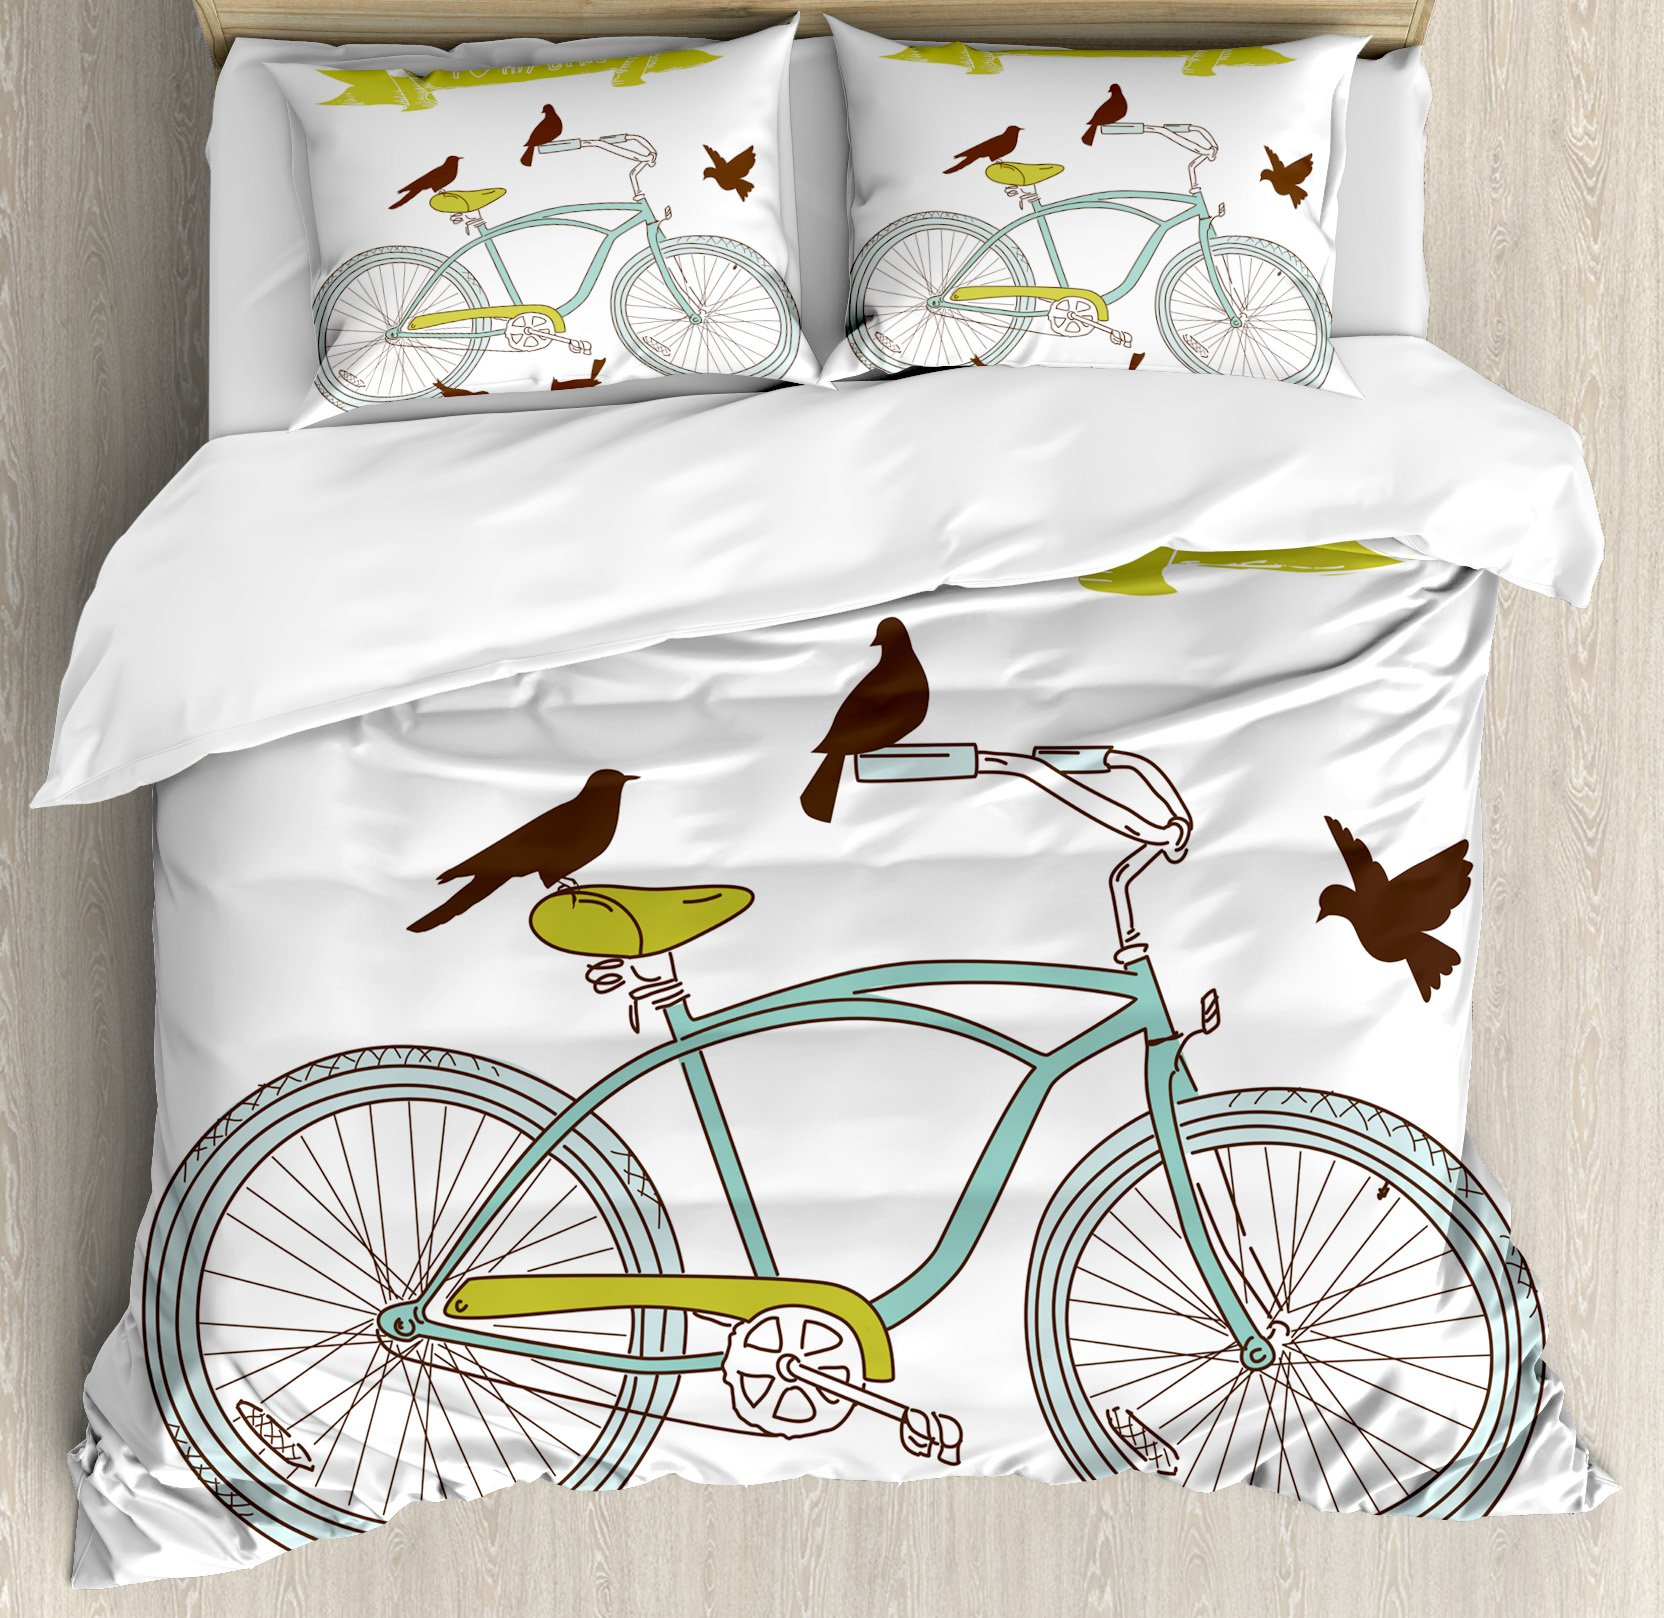 Bicycle Duvet Cover Set King Size by Ambesonne, I Love My Bike Concept with Birds on the Seat Cruisers Basic Vehicle Simplistic Art, Decorative 3 Piece Bedding Set with 2 Pillow Shams, Green Blue by Ambesonne (Image #1)